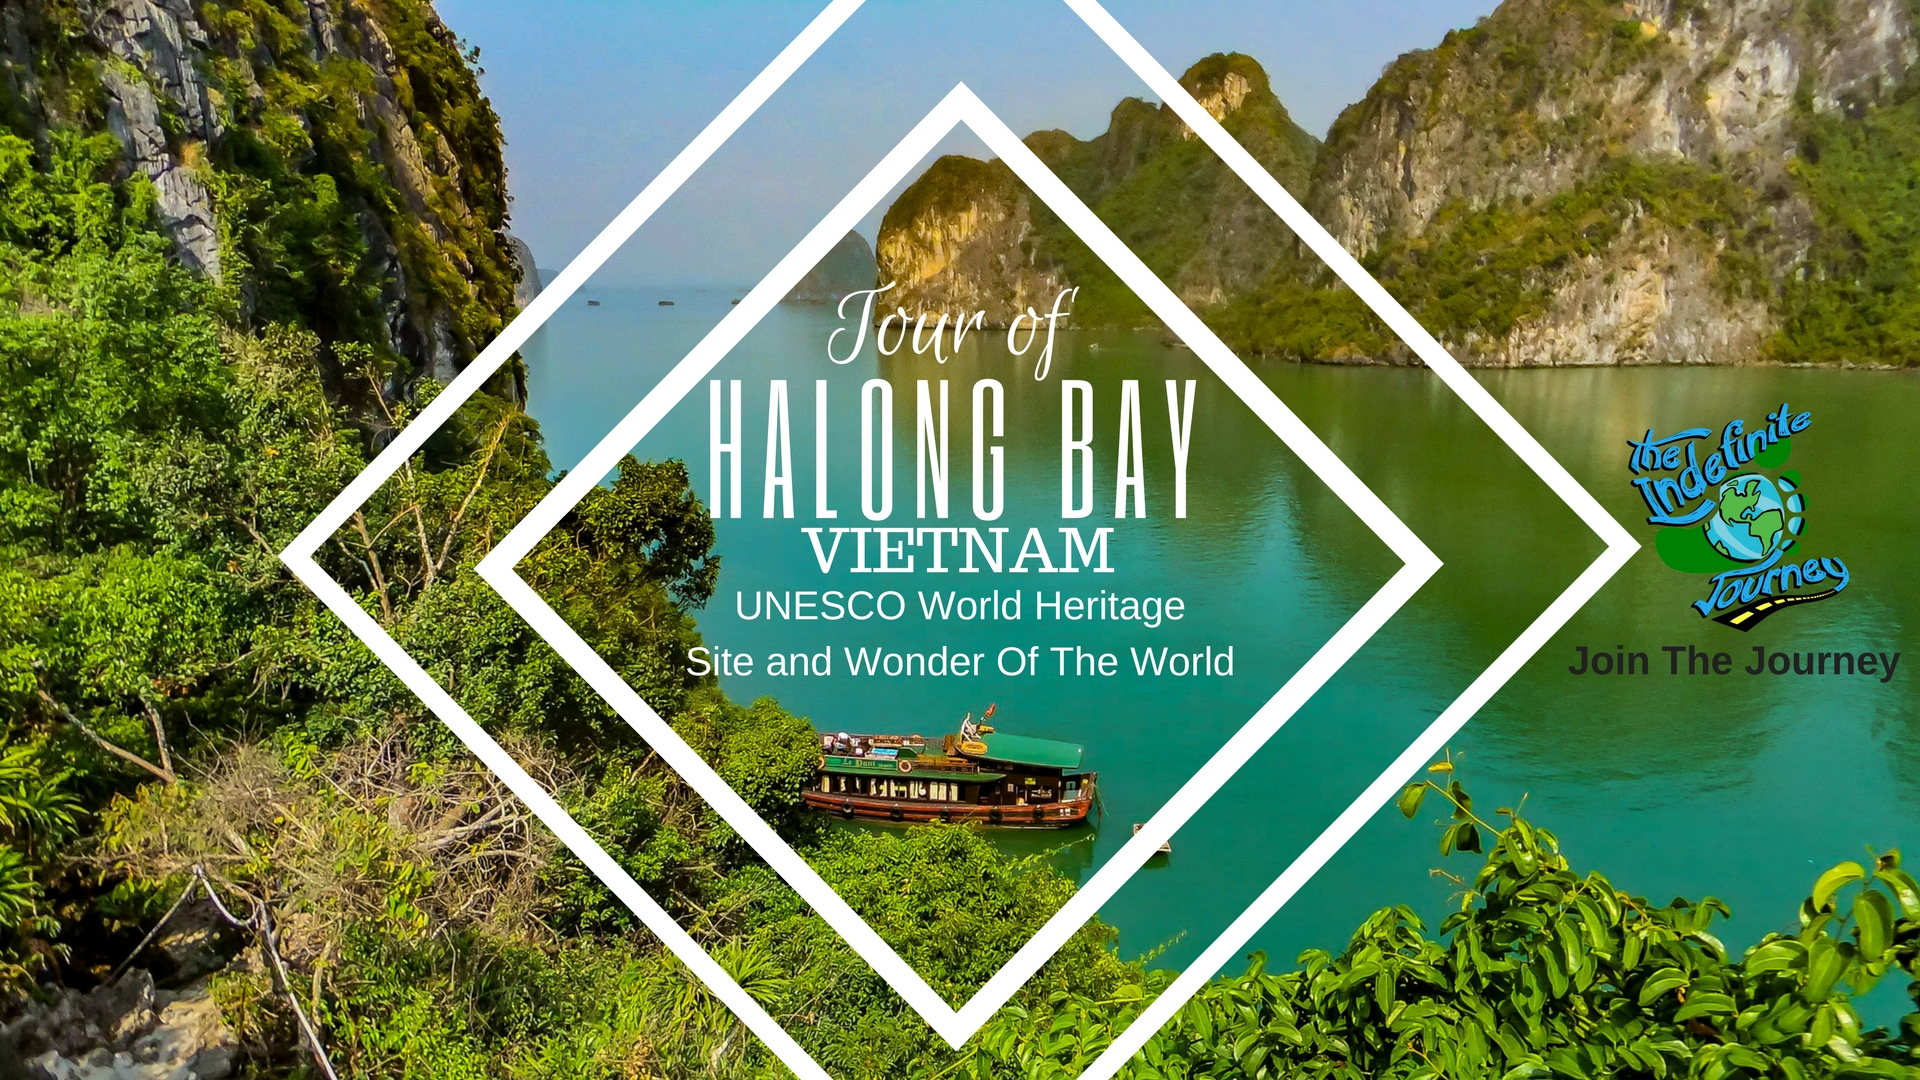 Tour Of Halong Bay, Vietnam - UNESCO World Heritage Site and Wonder Of The World